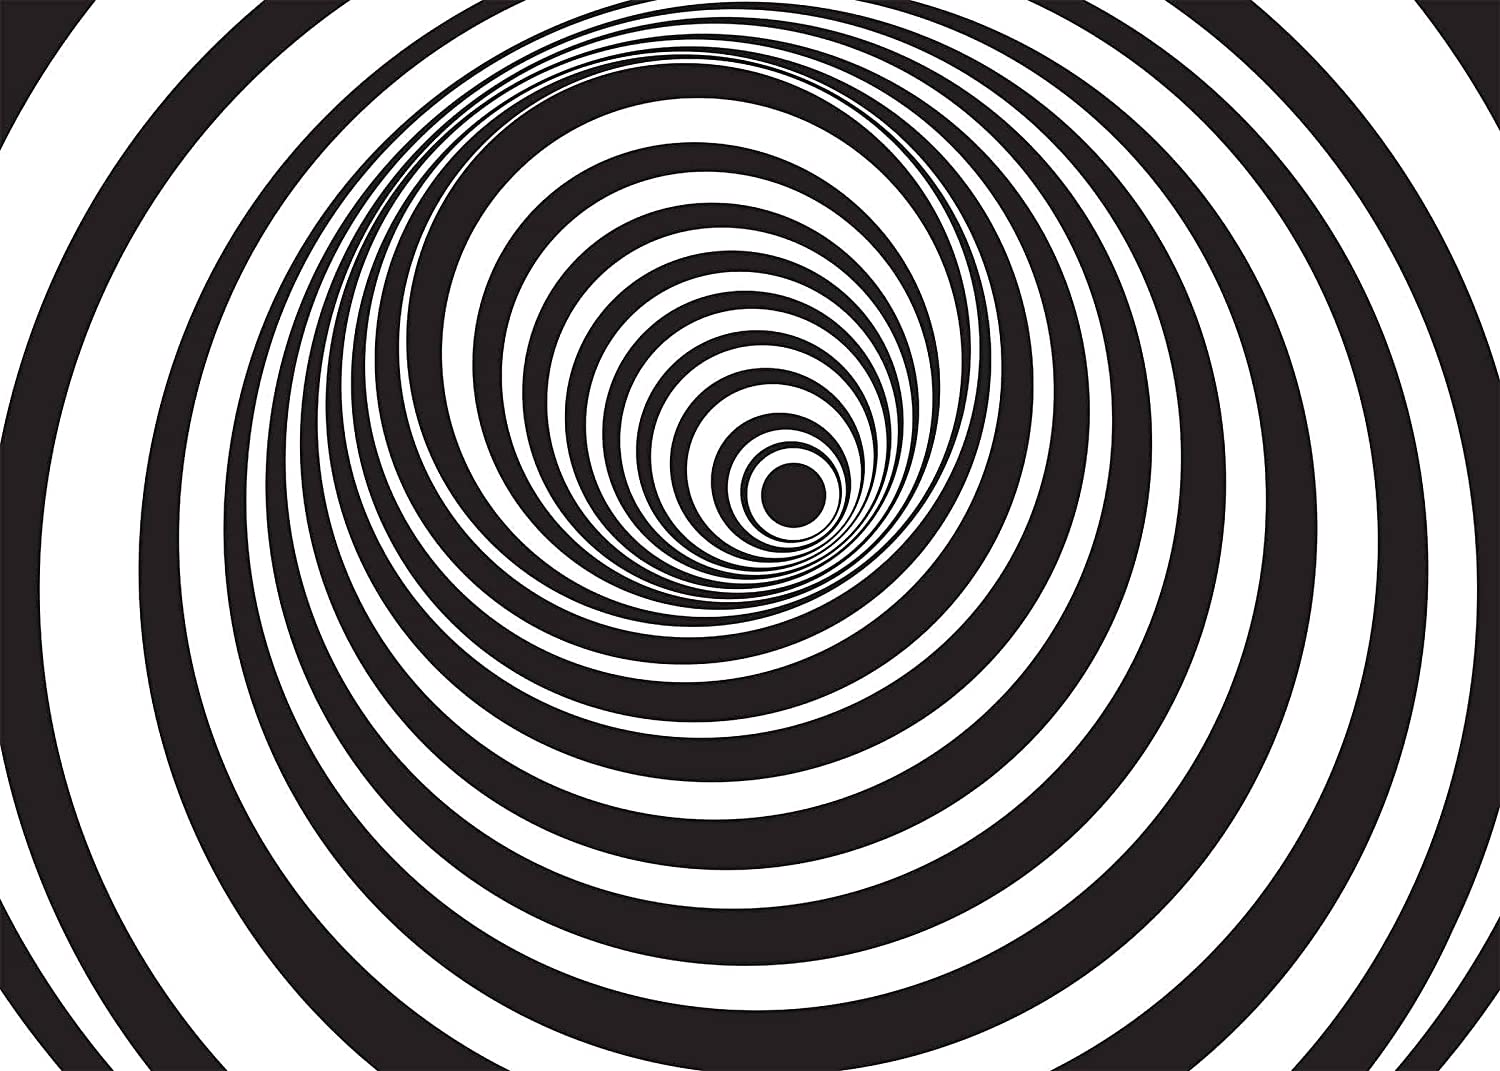 15x10ft Vinyl Black White Stripes Backdrop 3D Sprial Abstract Picture Background Photo Video Studio Props LYGE503 for Party Decoration Birthday YouTube Videos School Photoshoot Photo Background Props